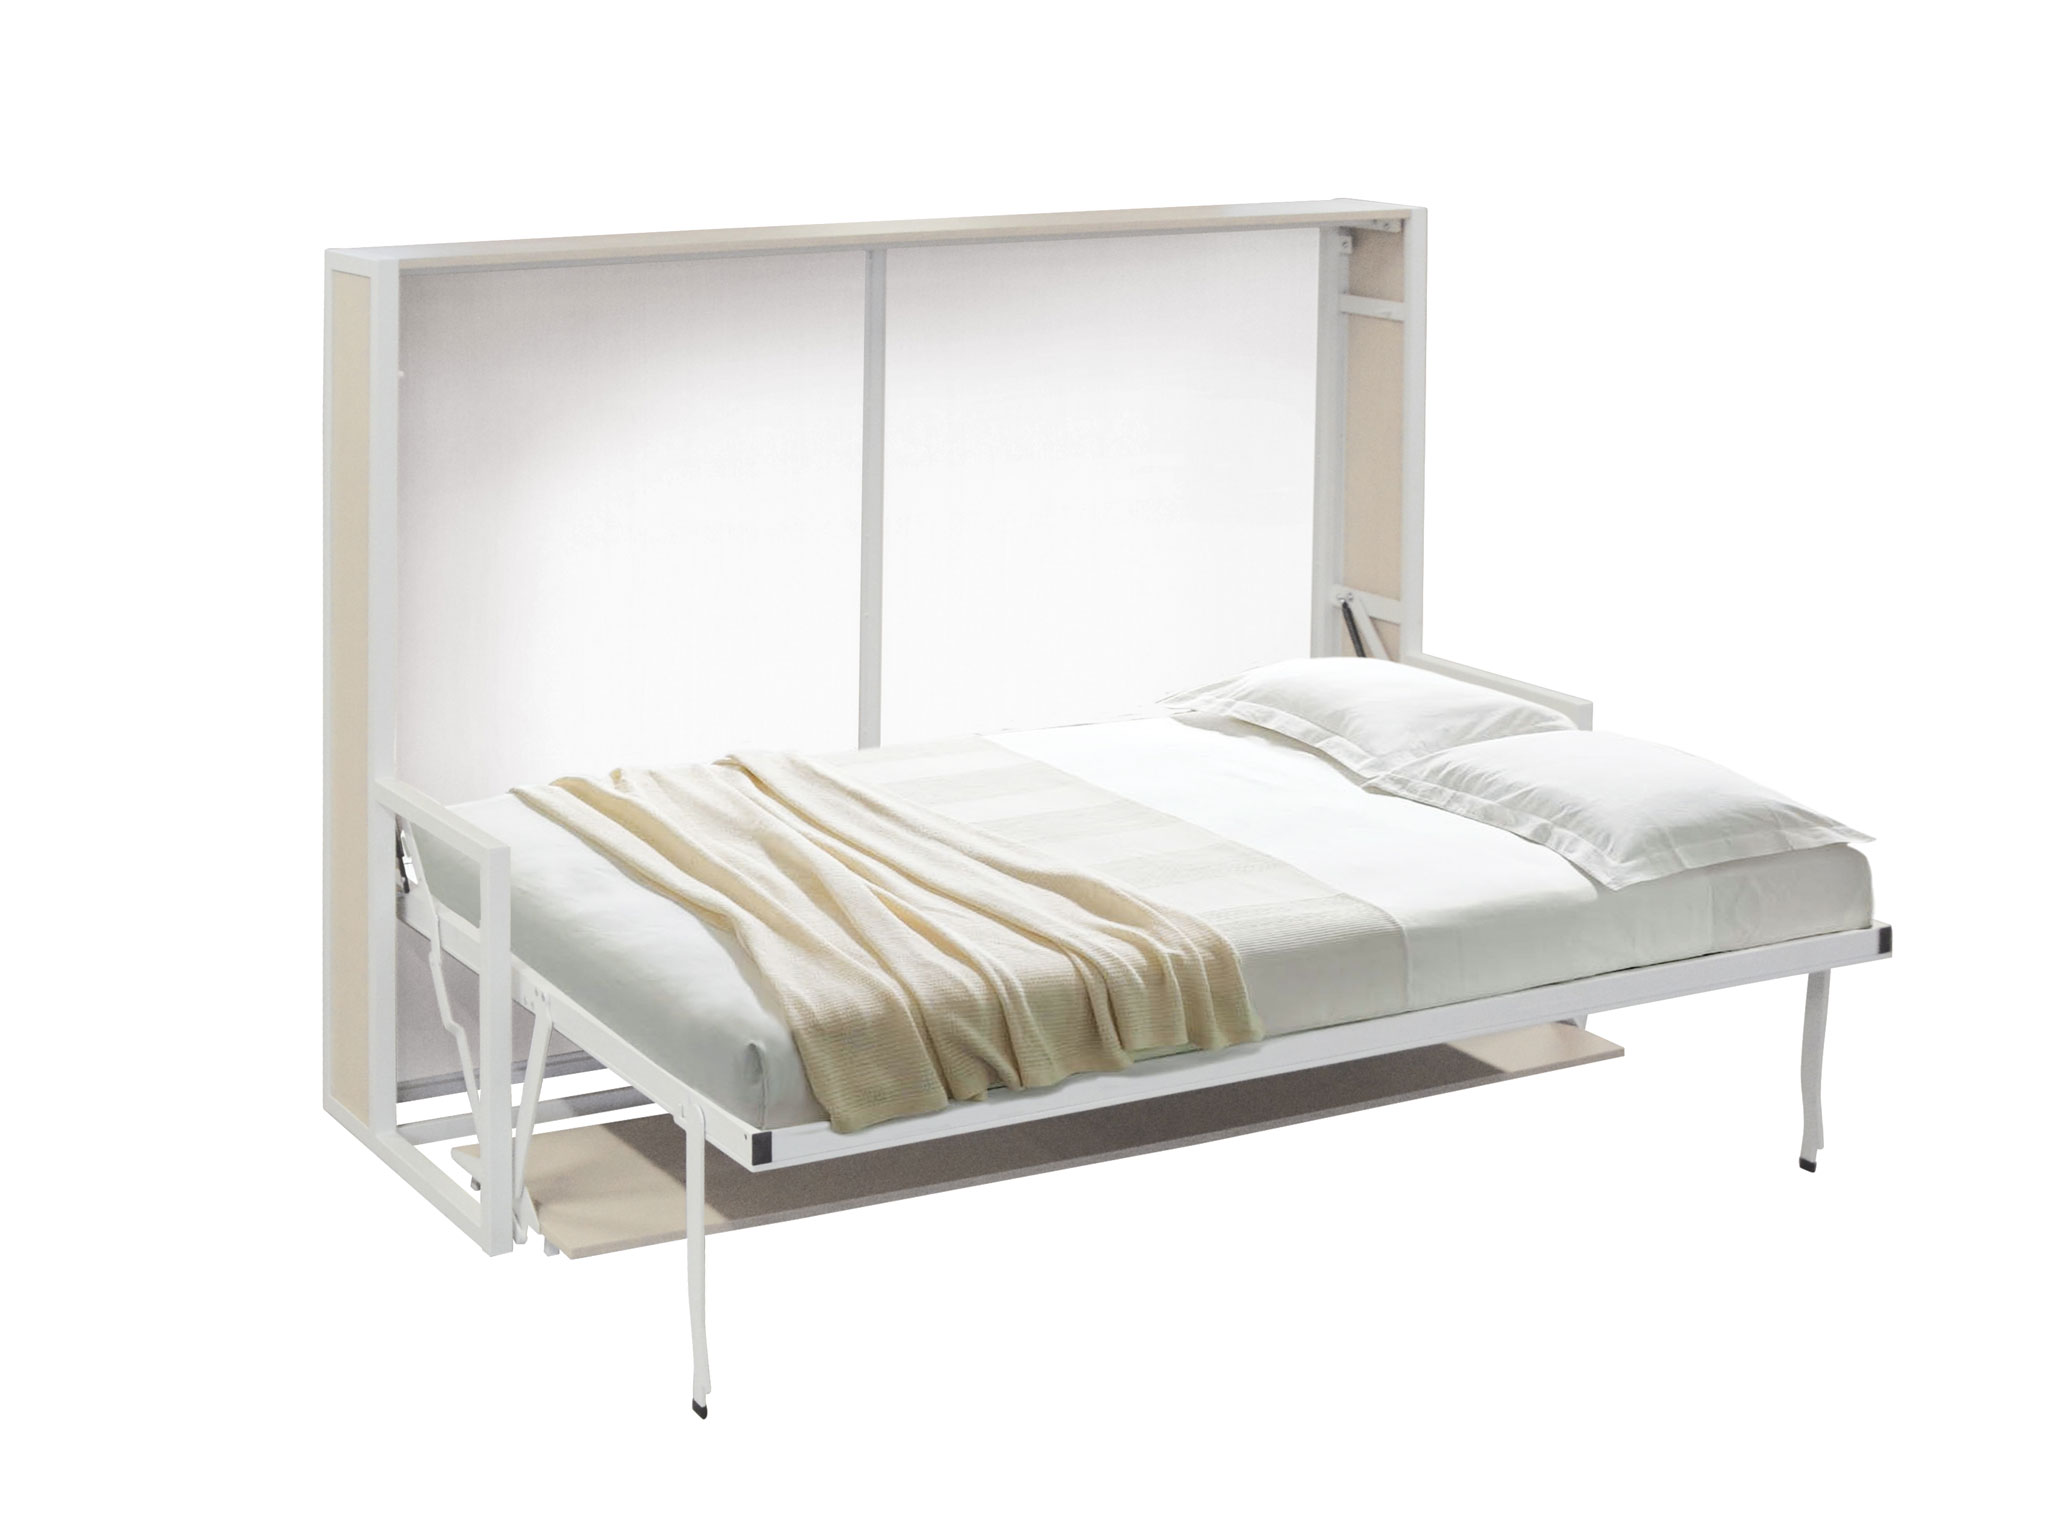 Colombo 907 Smart Beds | Letti, castelli e camere da letto